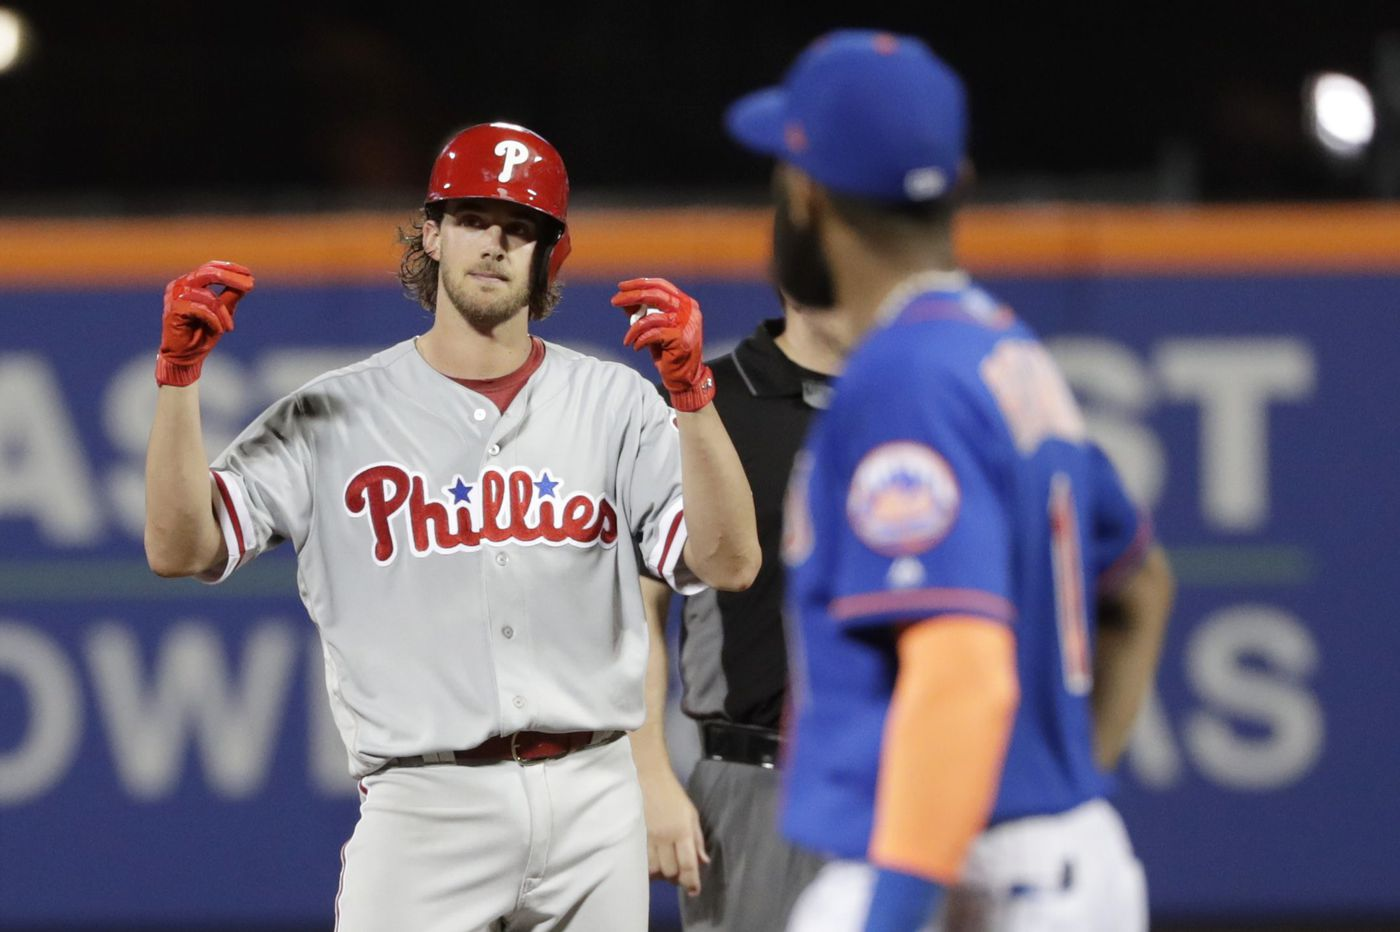 Aaron Nola picks up Phillies on the mound and at the plate in doubleheader split with Mets